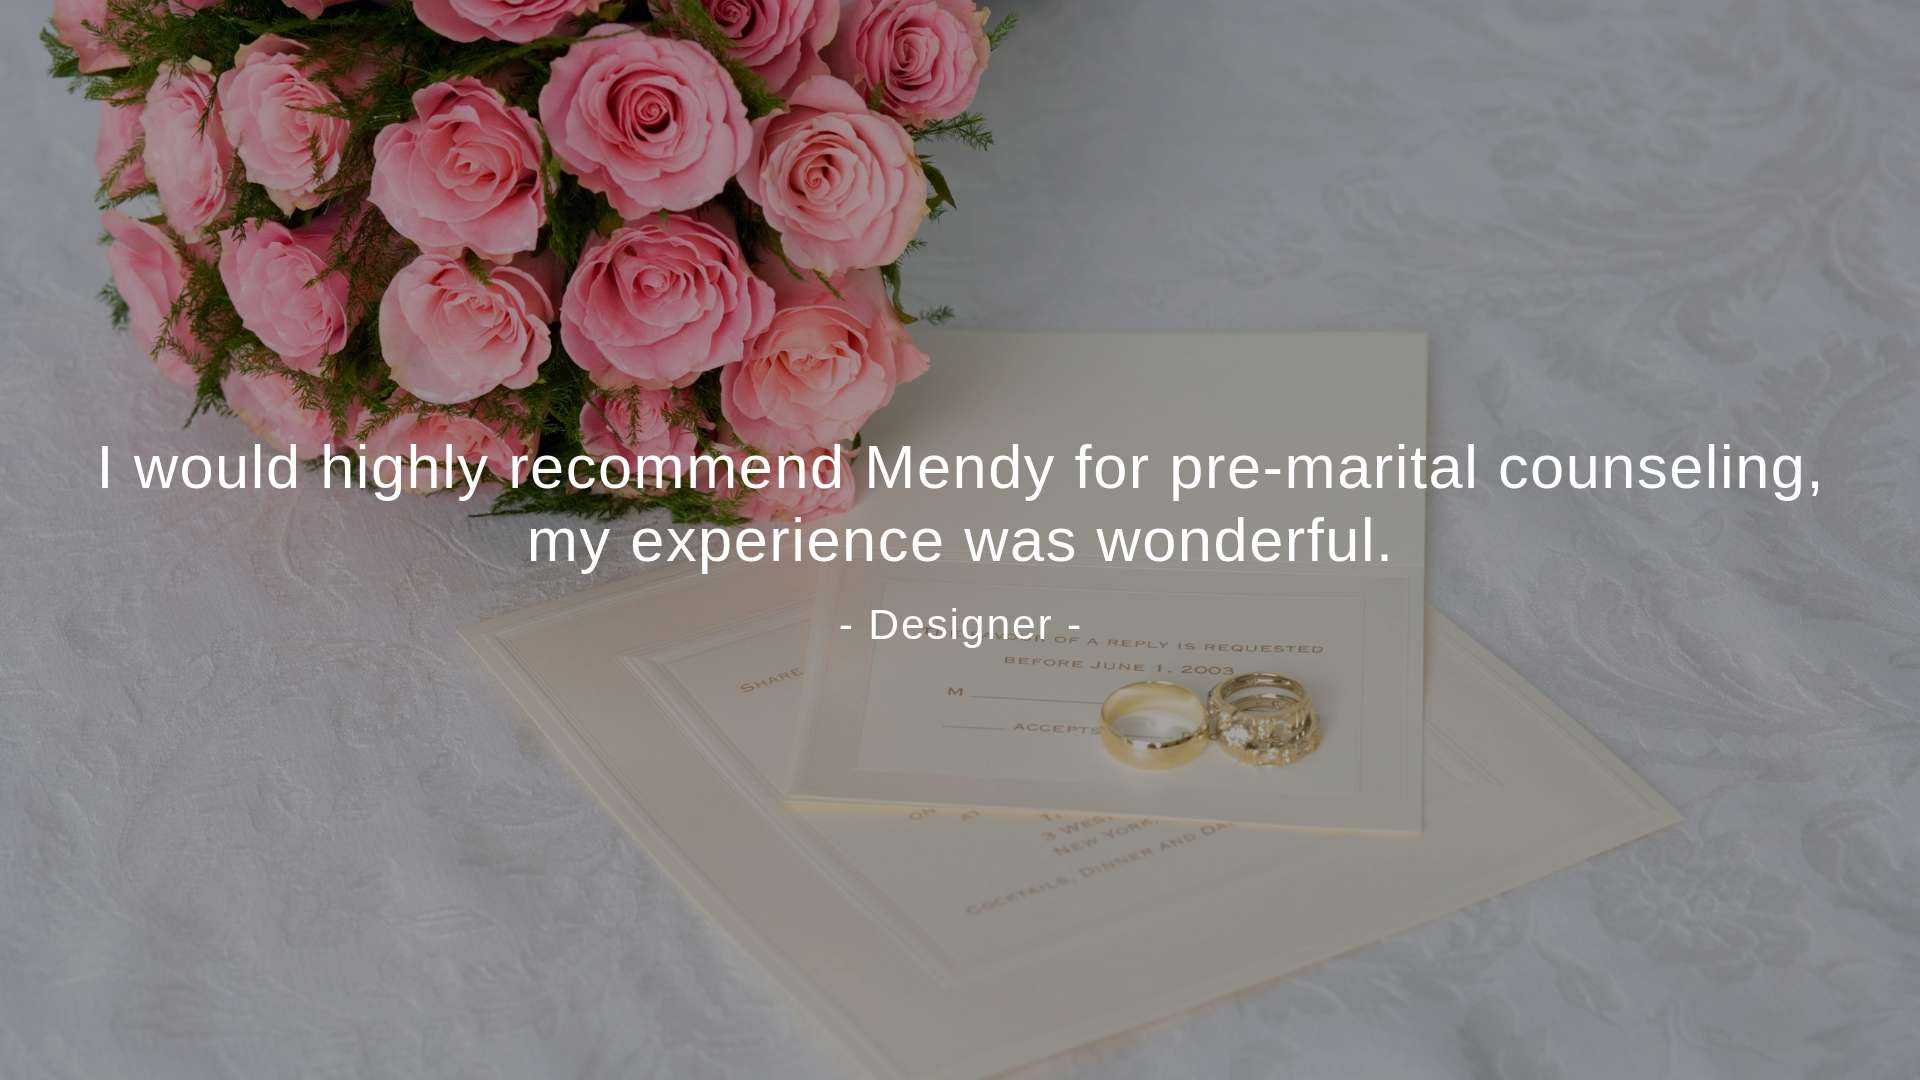 """I would highly recommend Mendy for pre-marital counseling, my experience was wonderful,"" A designer said."